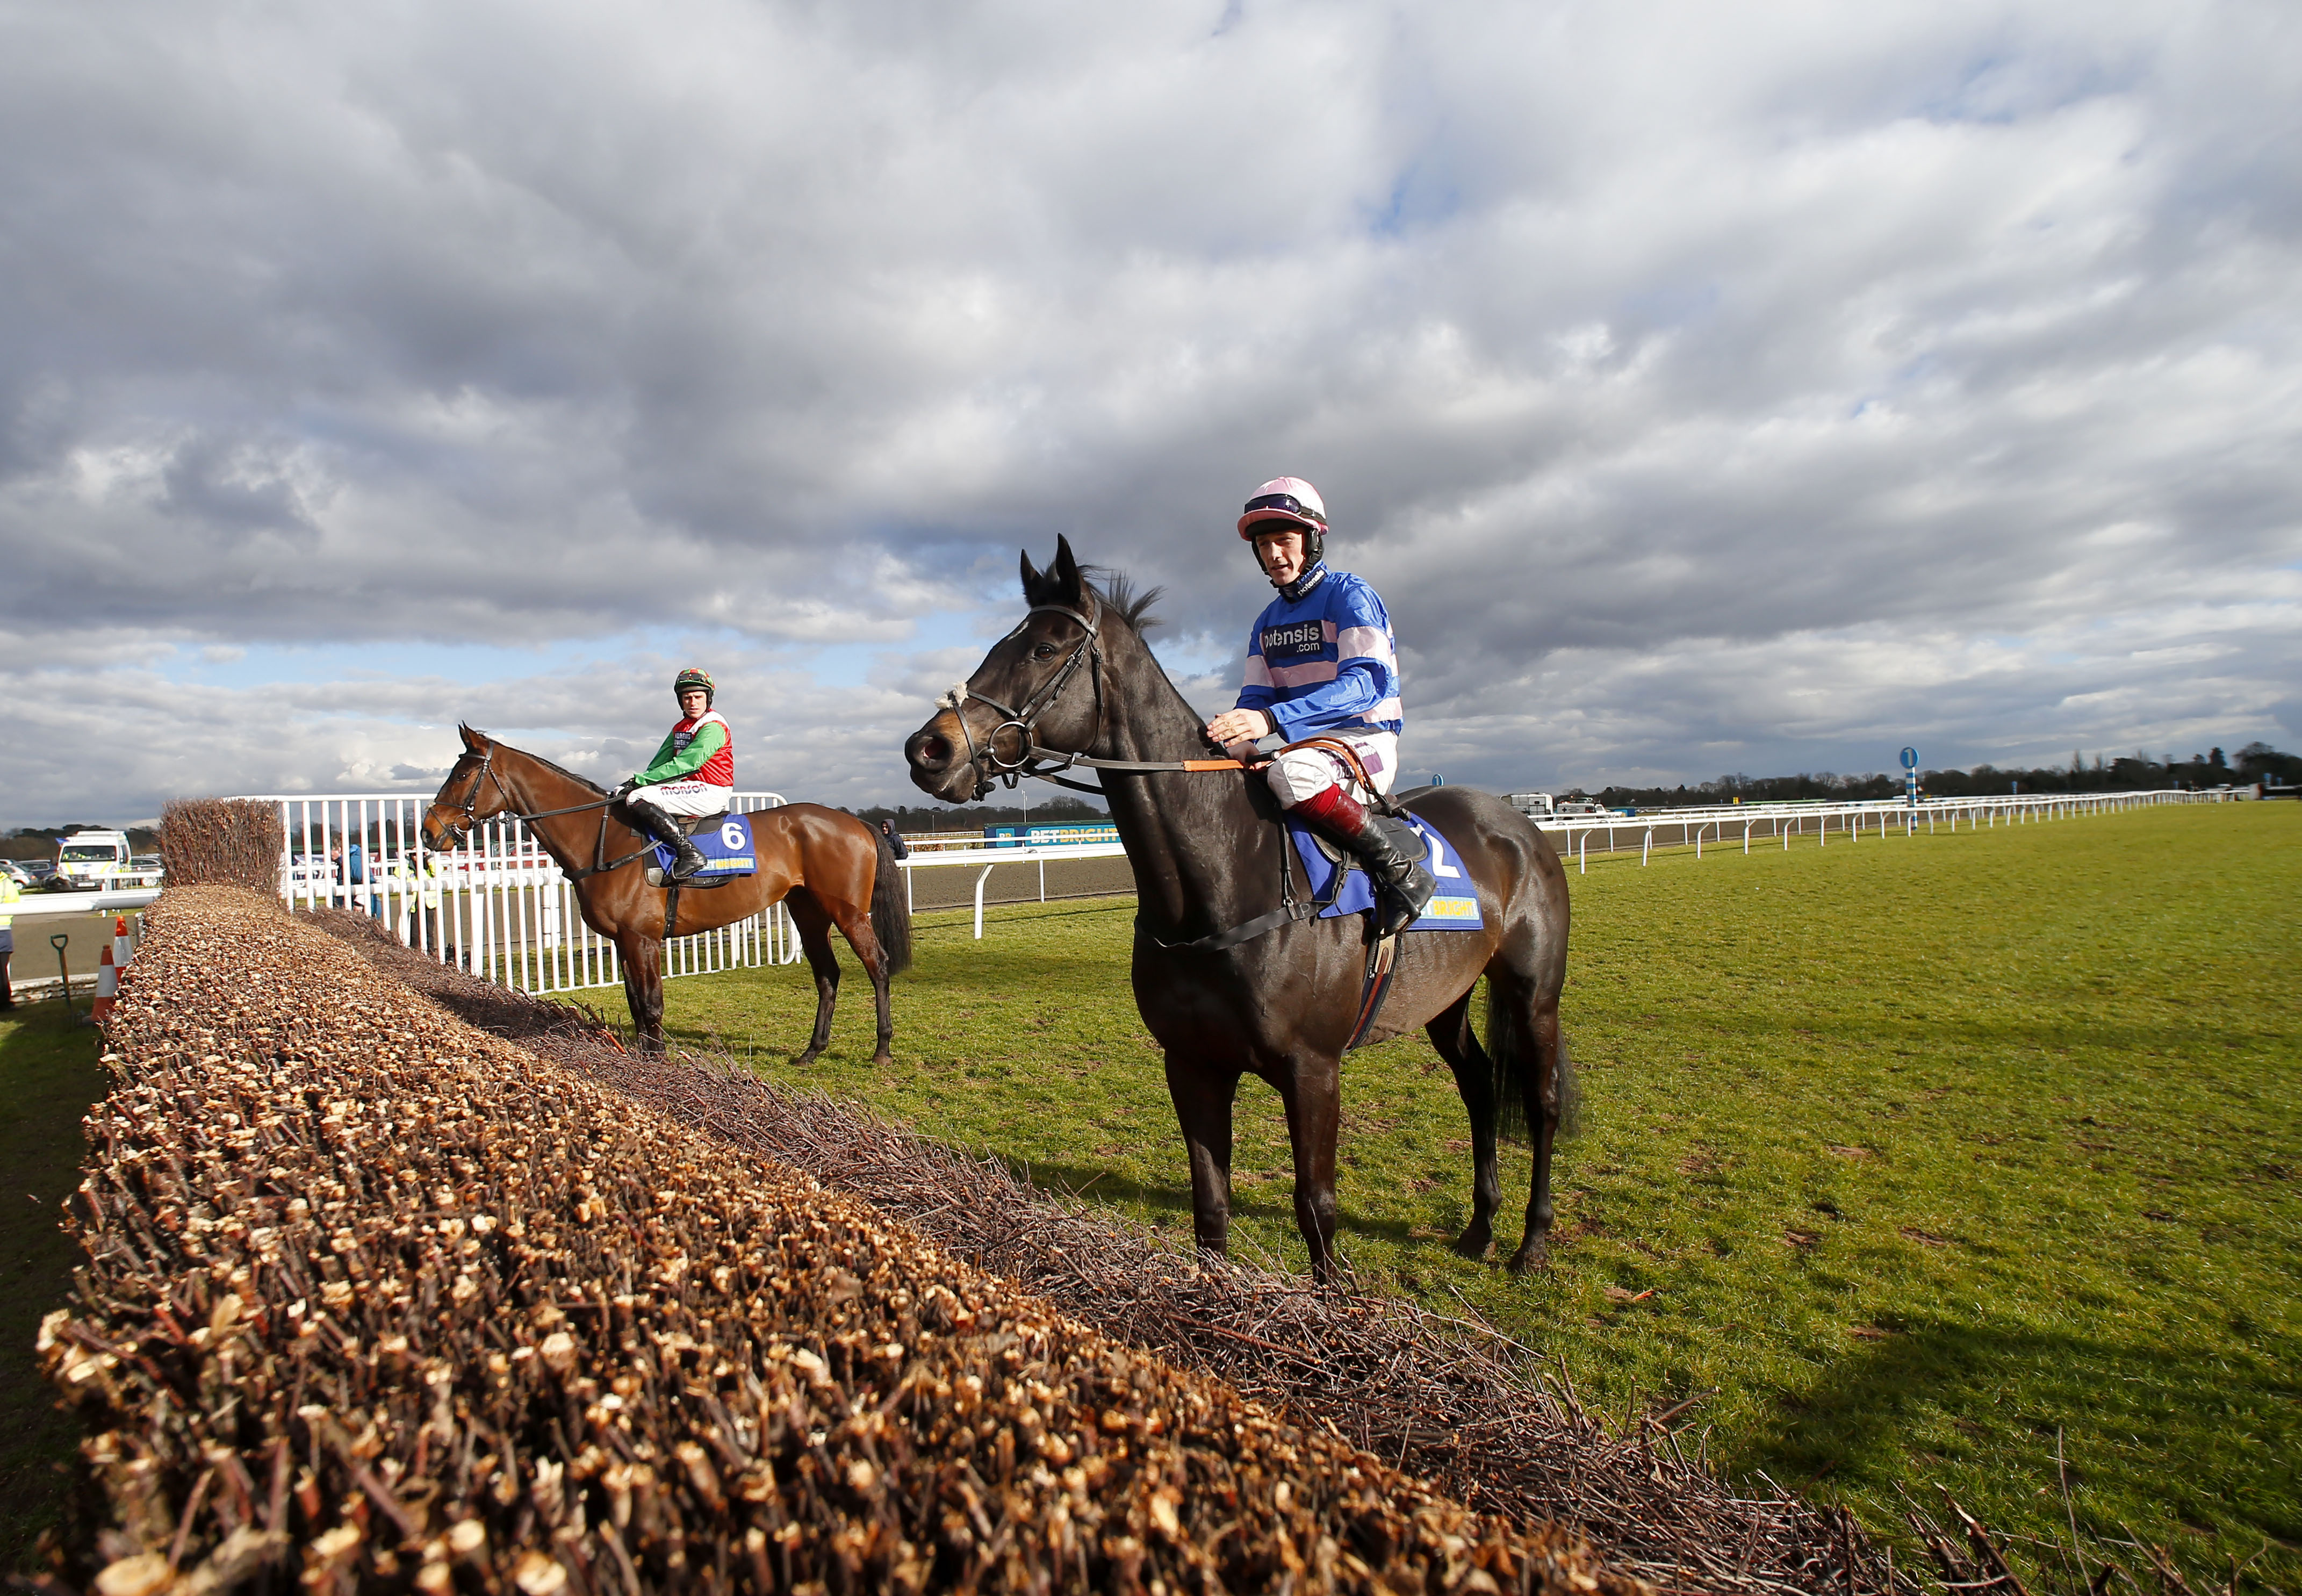 THE CASE AGAINST HANDICAPPING RESTRICTIONS IN NOVICE CHASES